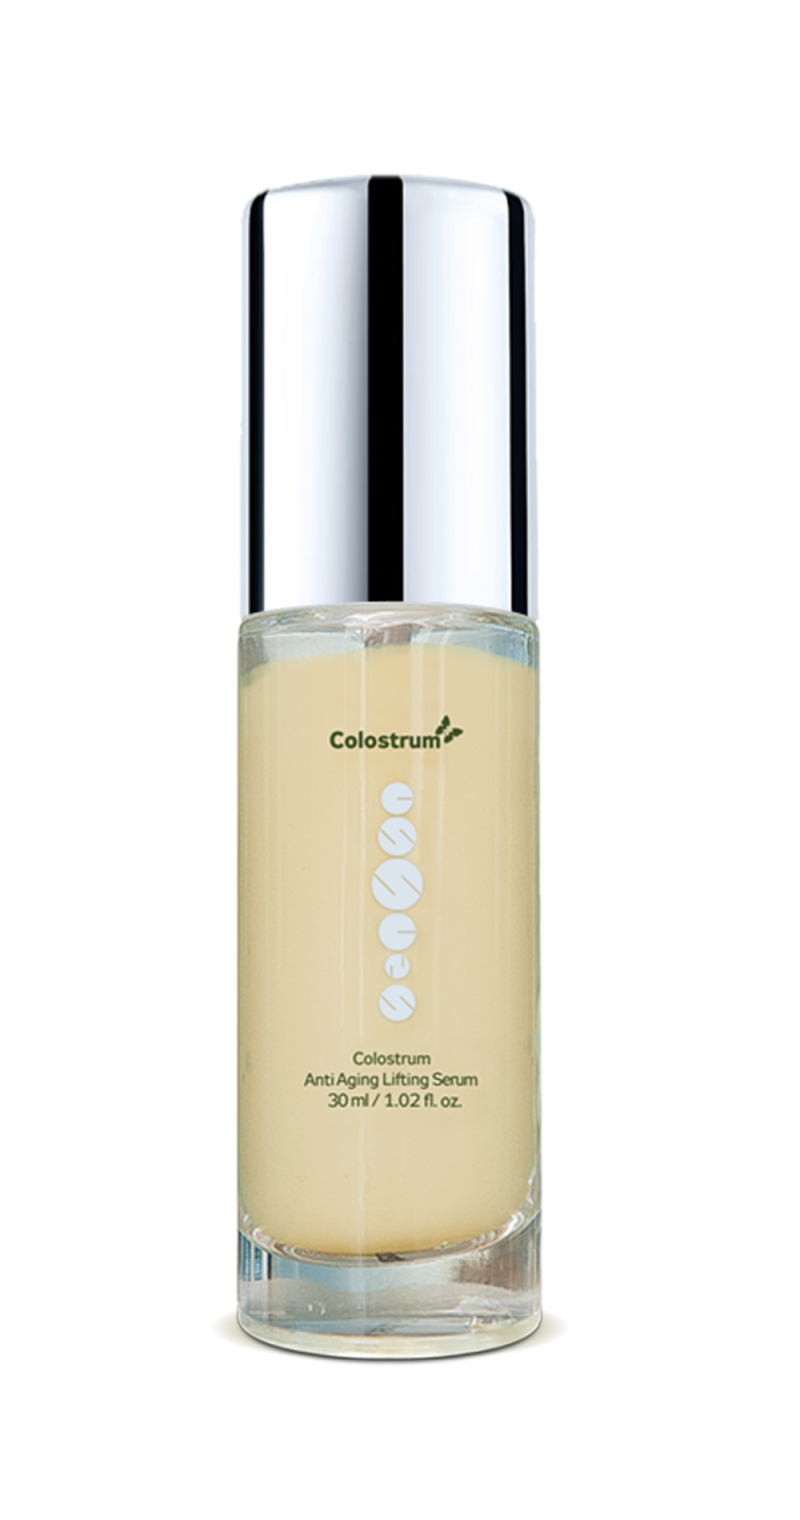 Colostrum + Anti Aging Lifting Serum